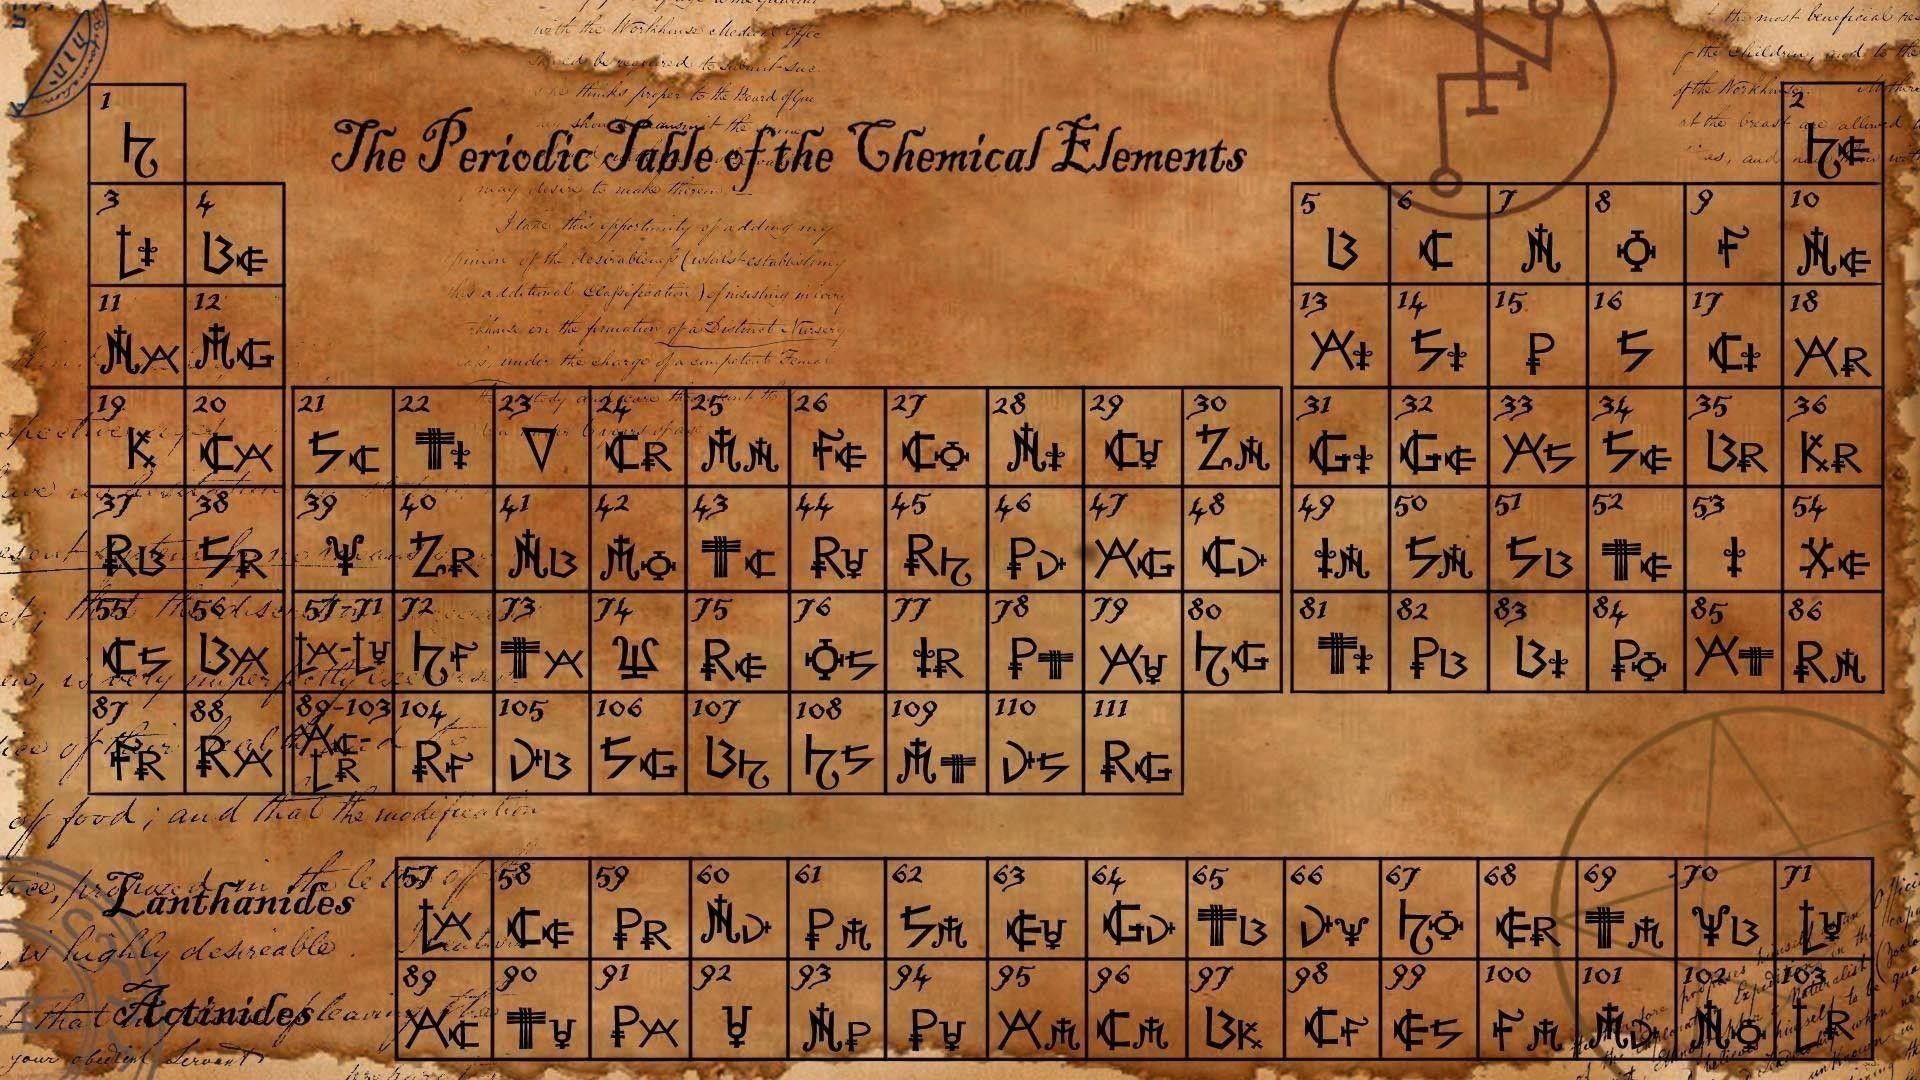 Periodic table hd wallpapers wallpaper cave download periodic table app for pc new periodic table wallpaper high urtaz Image collections